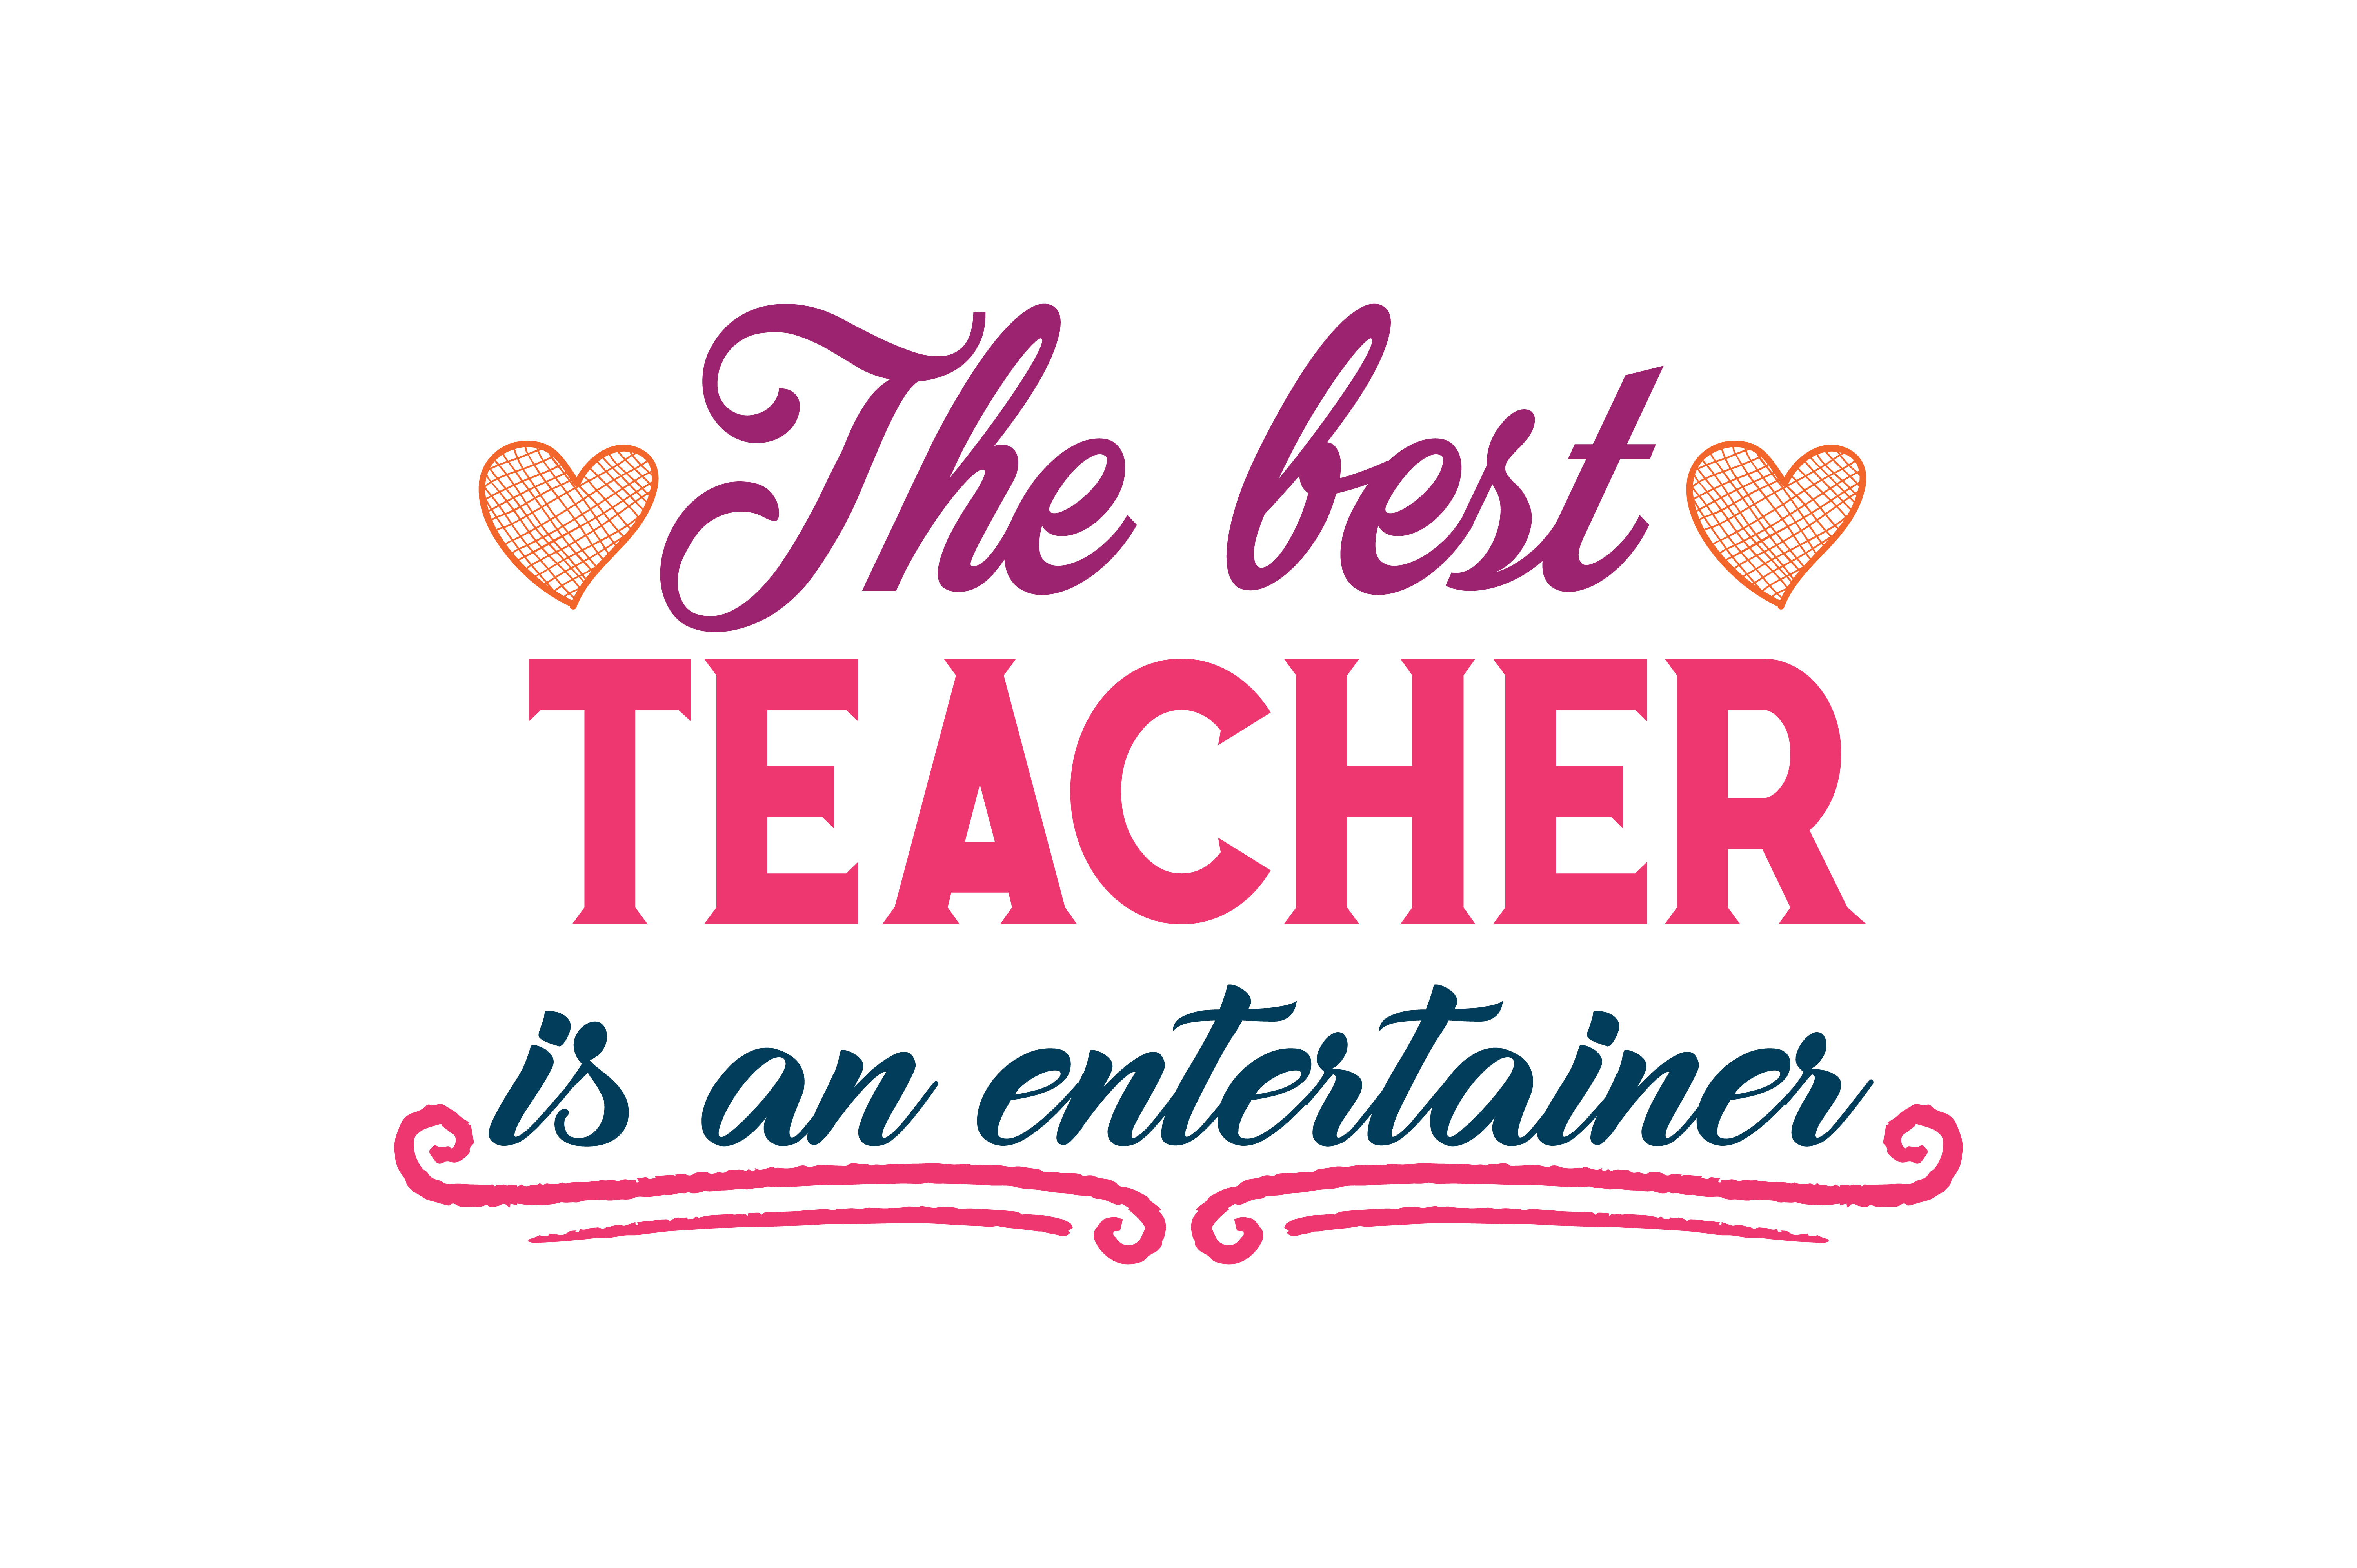 The Best Teacher Is An Entertainer Quote Svg Cut Graphic By Thelucky Creative Fabrica